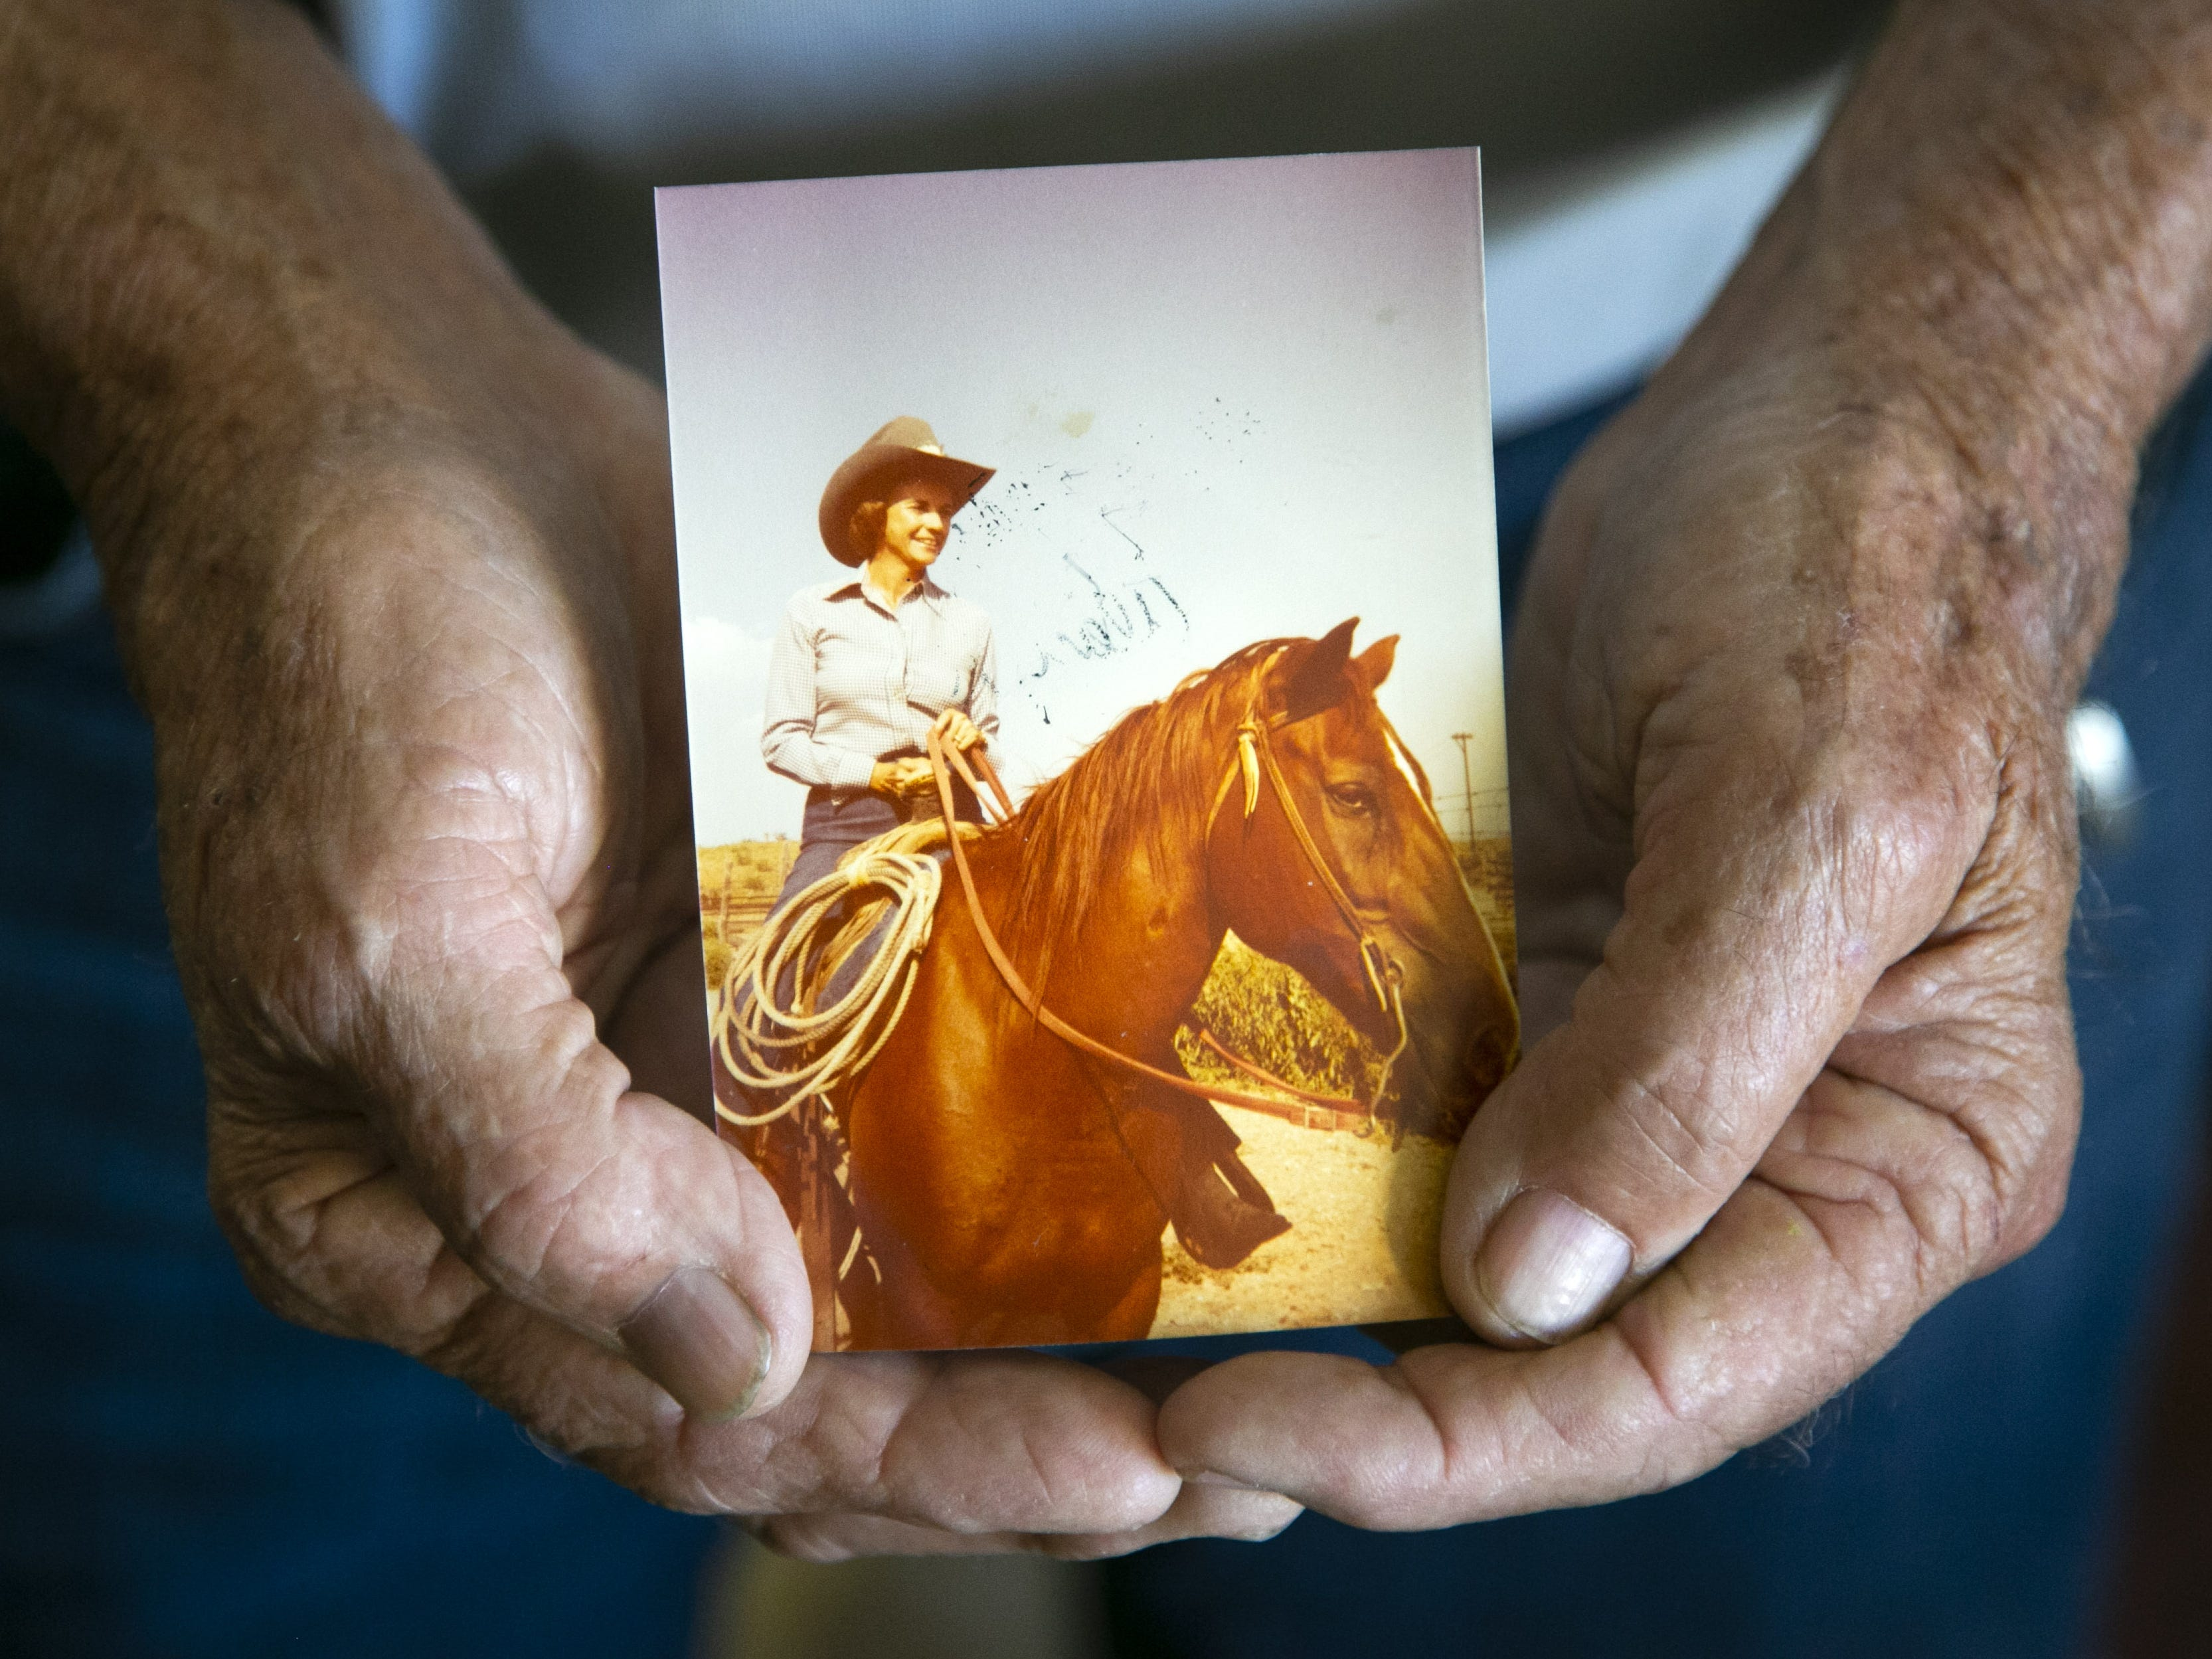 """Alan Day, the brother of former Supreme Court Justice Sandra Day O'Connor, holds a photo his sister riding her favorite horse, """"Chico,"""" at the Lazy B Ranch outside of Duncan, Ariz., in the 1950s. Day was holding the photo at his Oro Valley home on Nov. 1, 2018. Former Supreme Court Justice Sandra Day O'Connor grew up on the cattle ranch."""